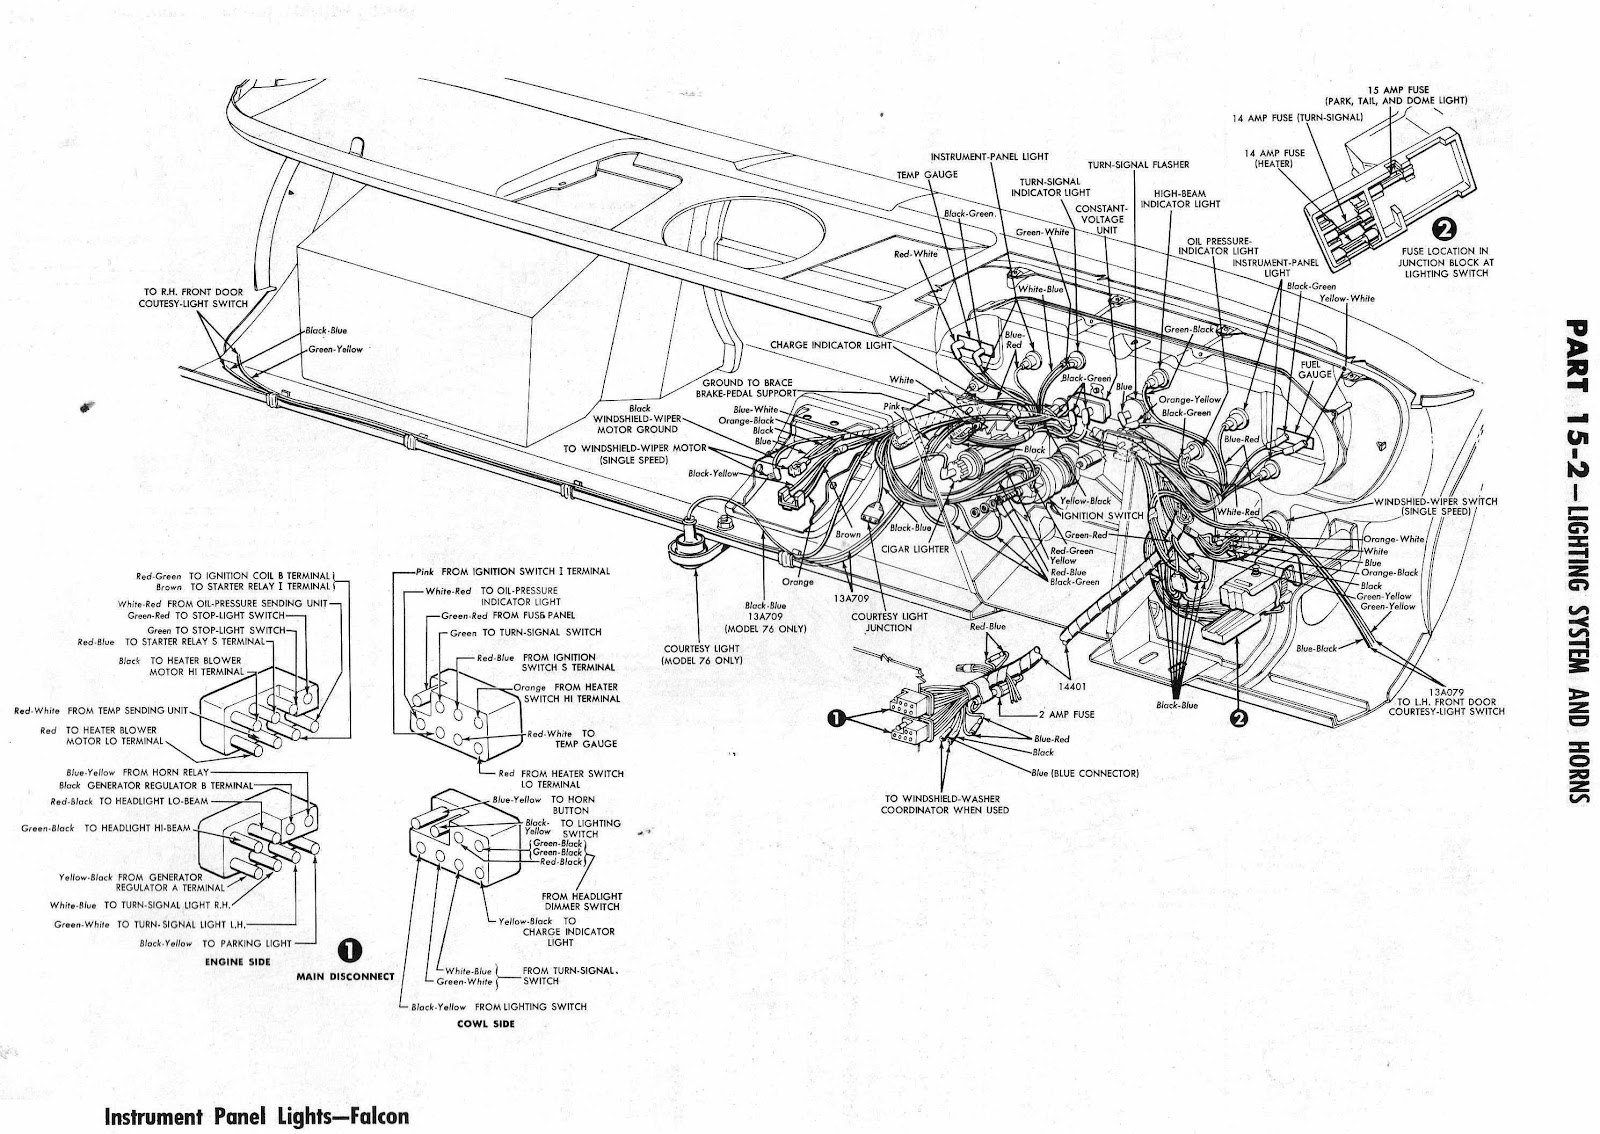 Ford+Falcon+1964+Lighting+System+and+Horns+Wiring+Diagram au falcon wiring diagram falcon guide \u2022 wiring diagrams j squared co  at alyssarenee.co